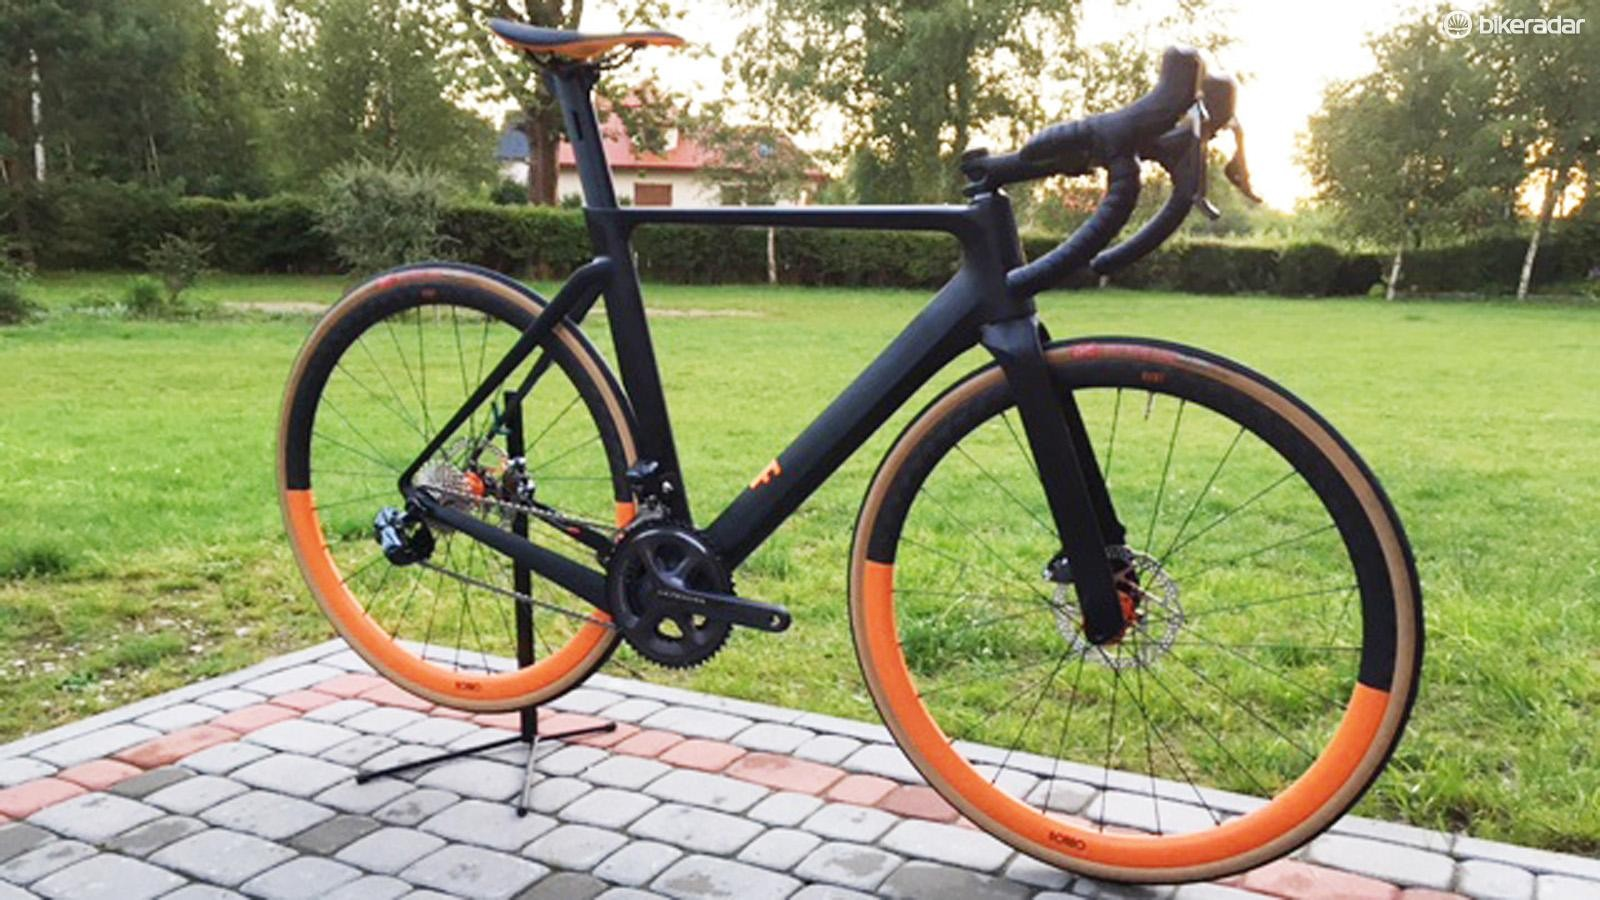 Rondo's HVRT prototype uses the same twin-tip fork concept as the gravel RUUT to provide two different riding geometries on the same bike